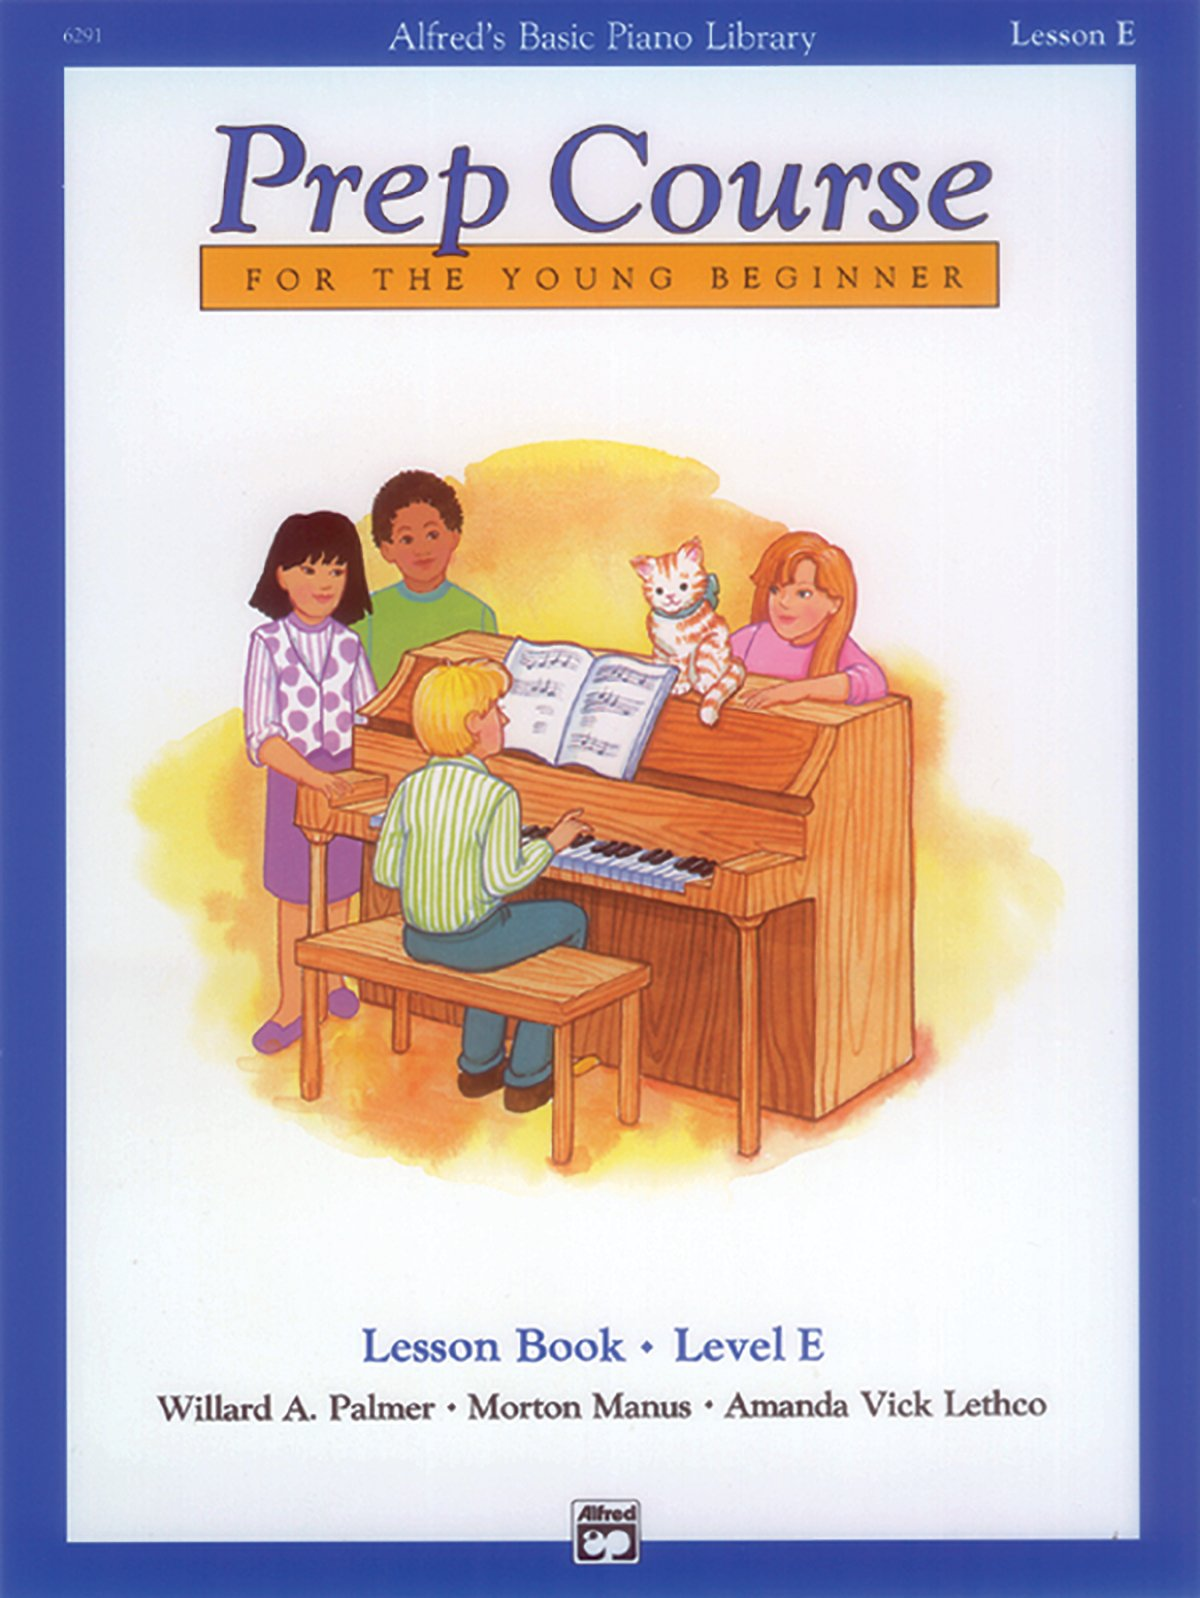 Top 10 Best alfreds basic piano library lesson book Reviews